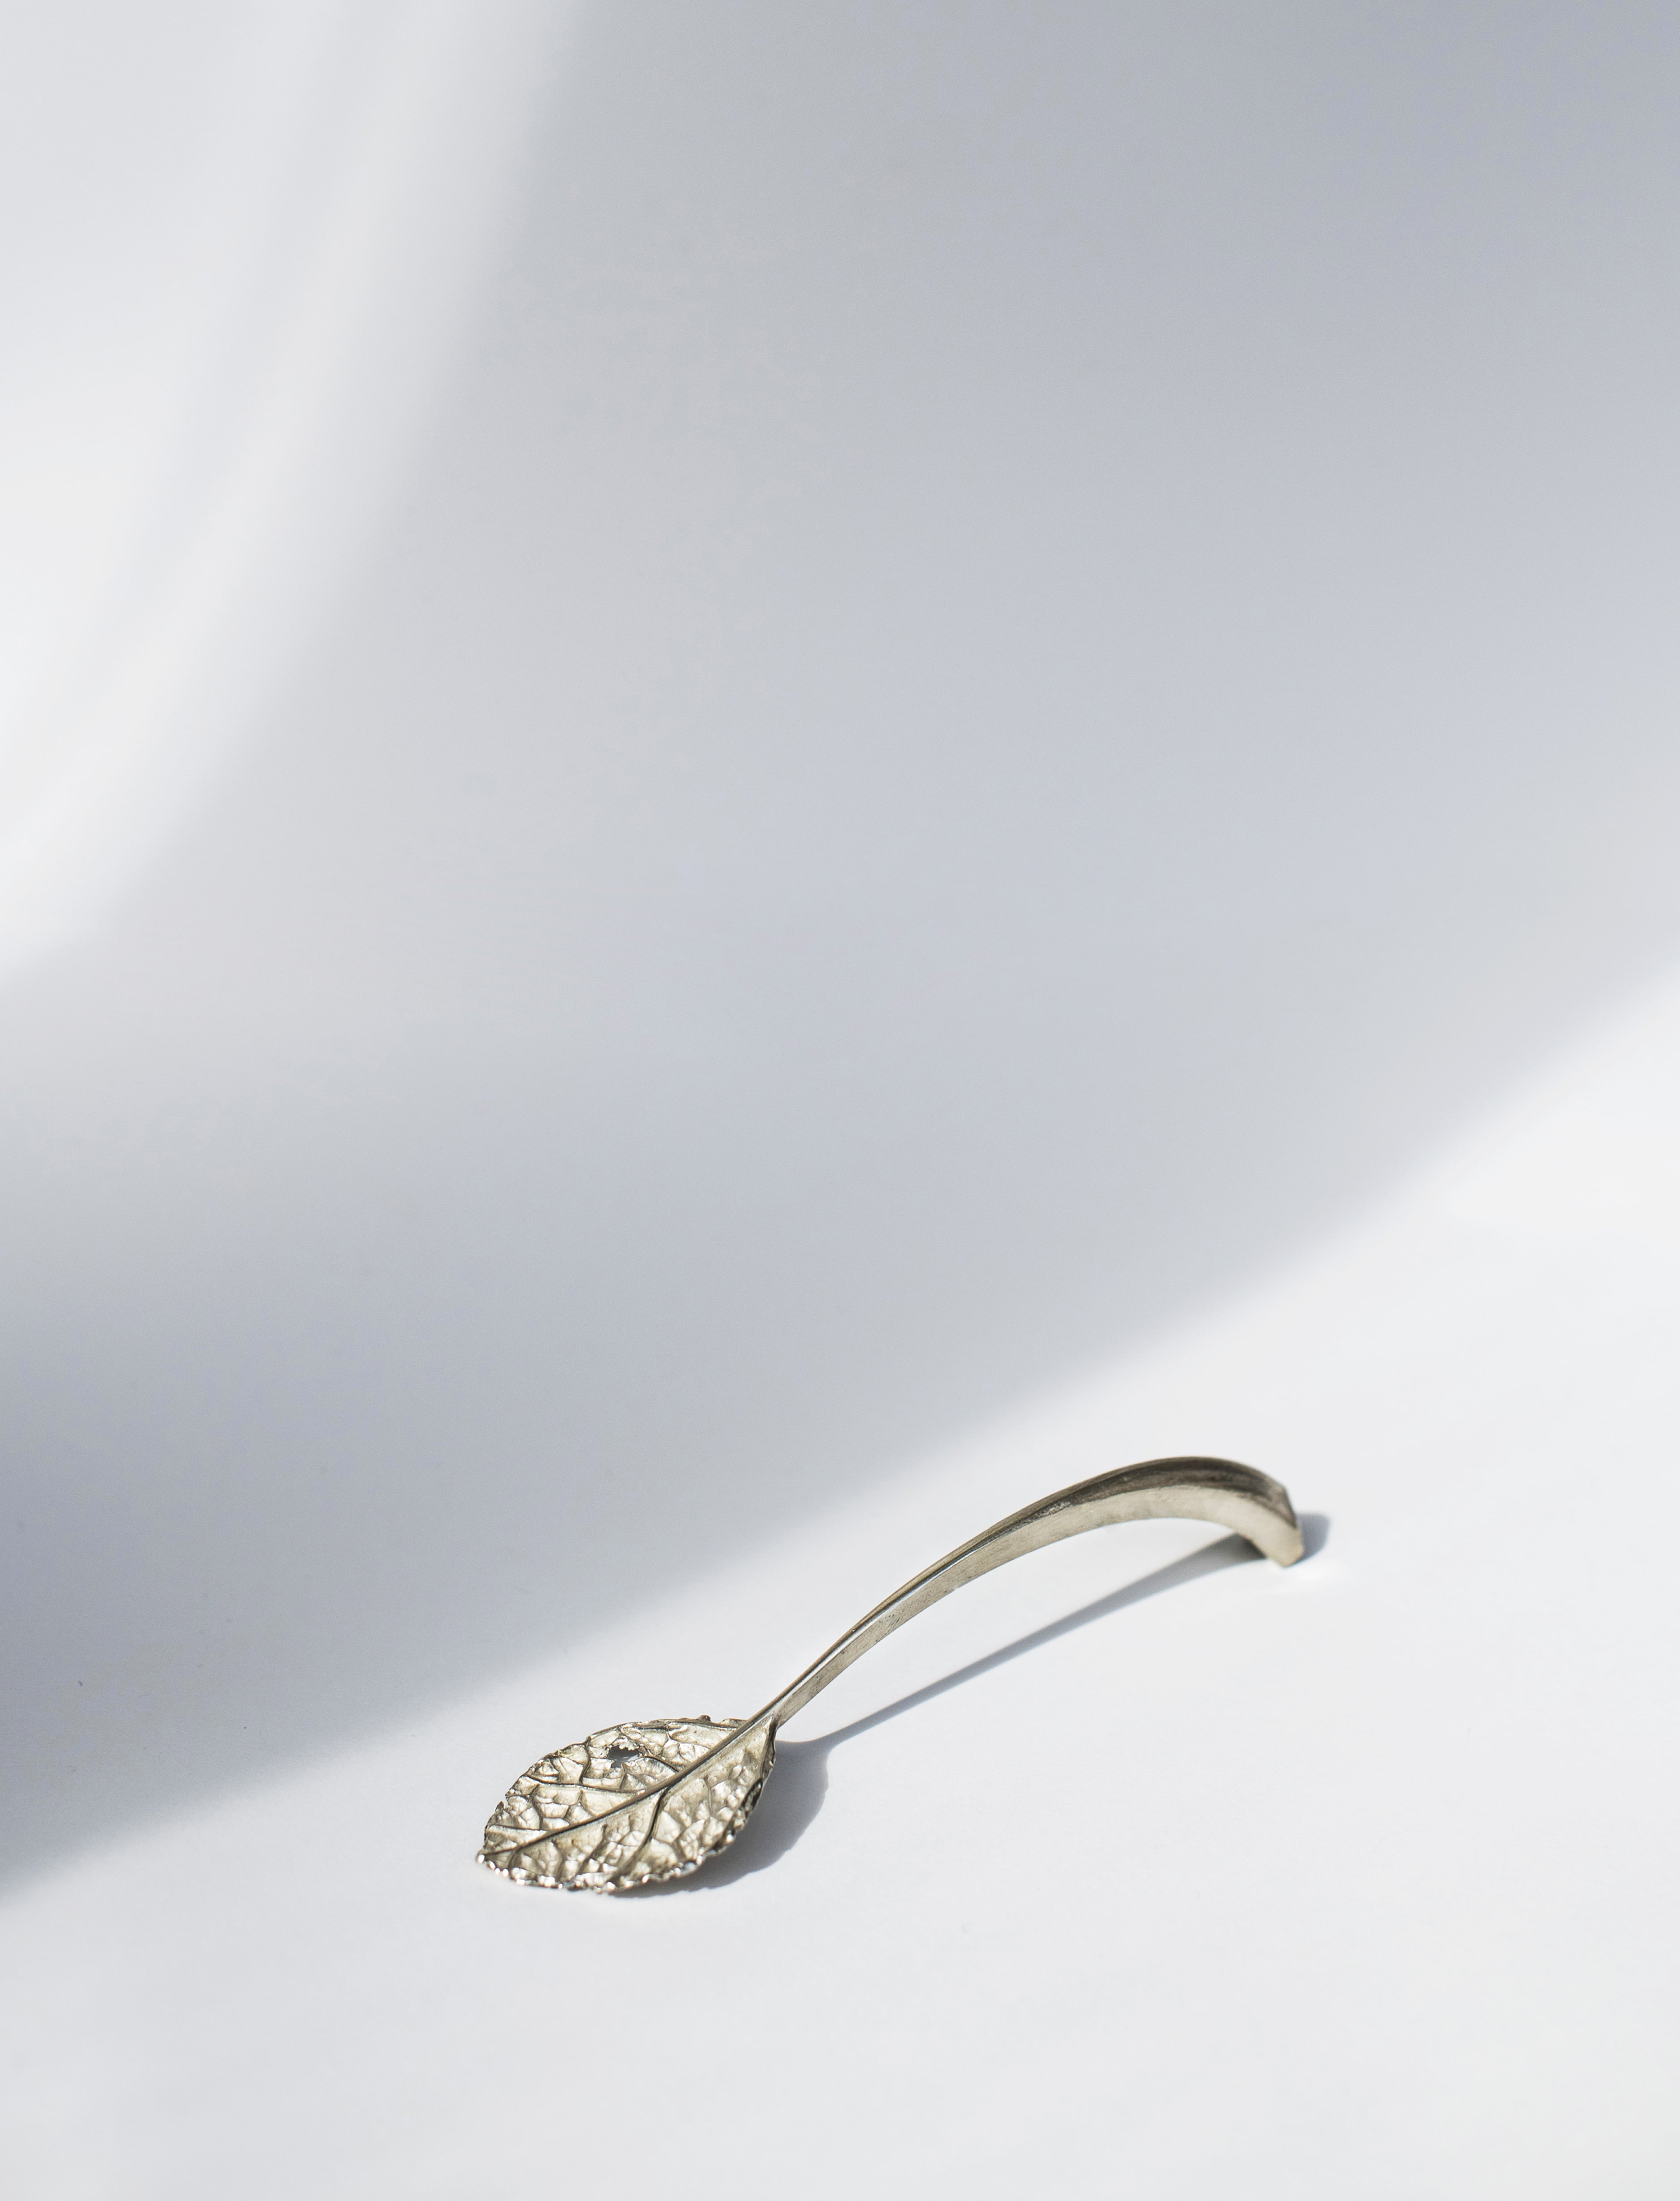 Arching Savoy Spoon